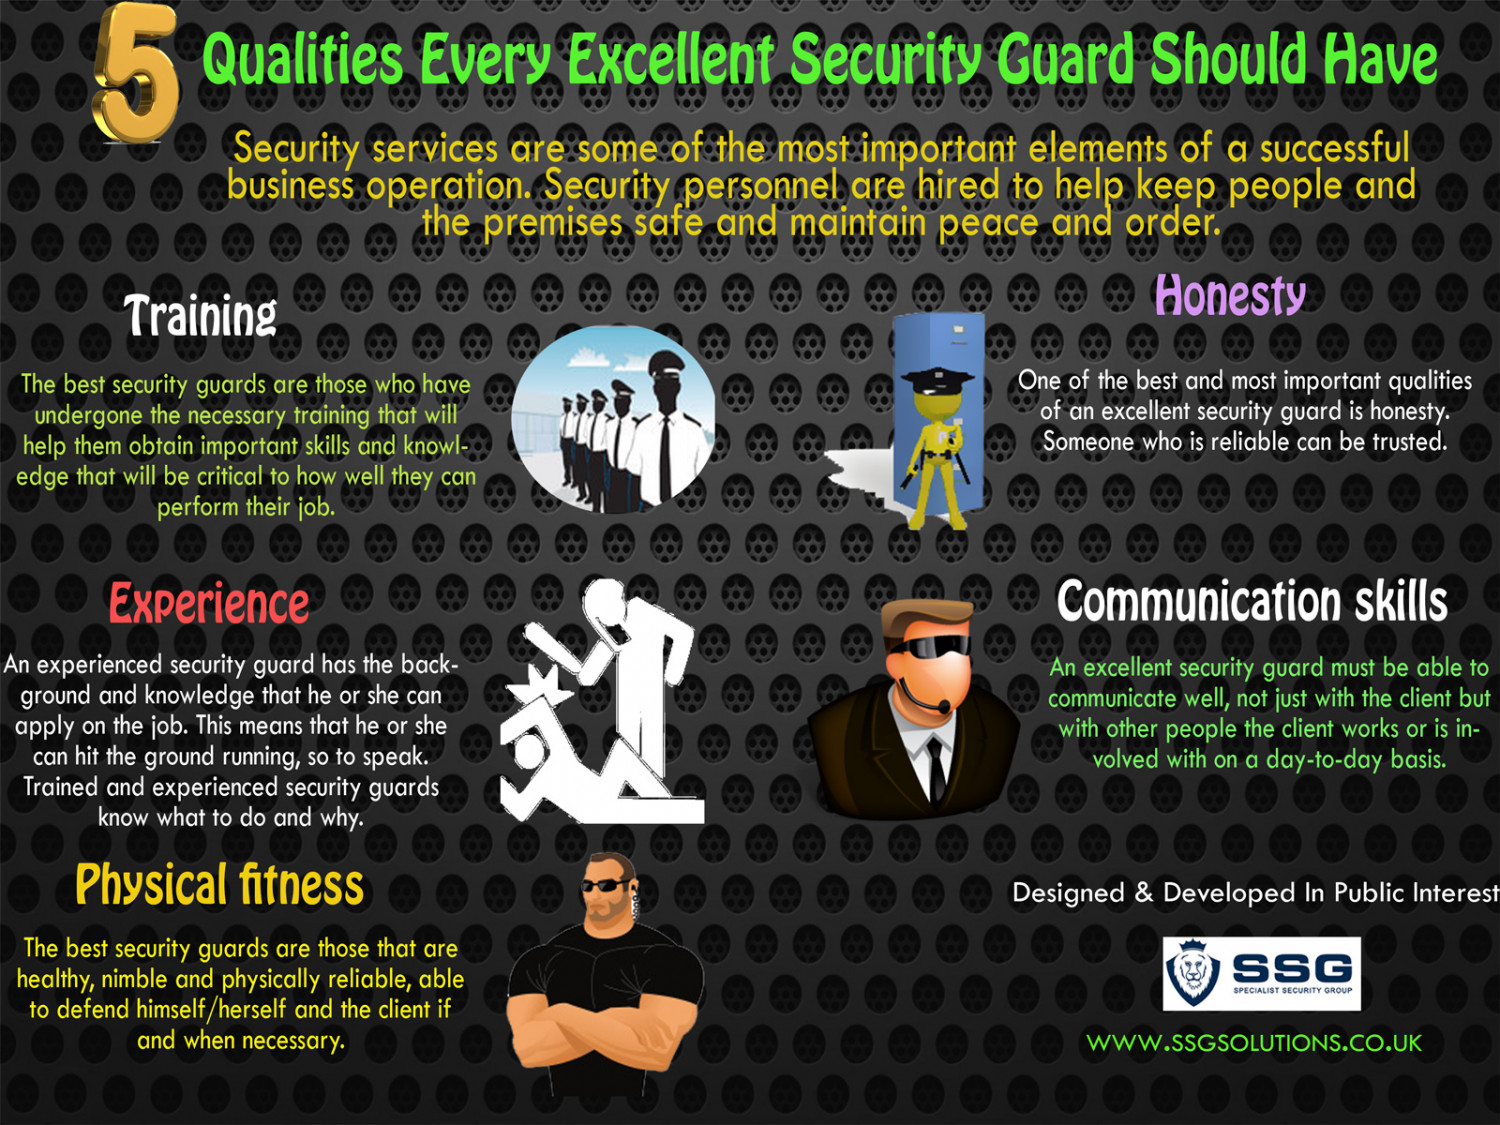 Qualities of a security officer